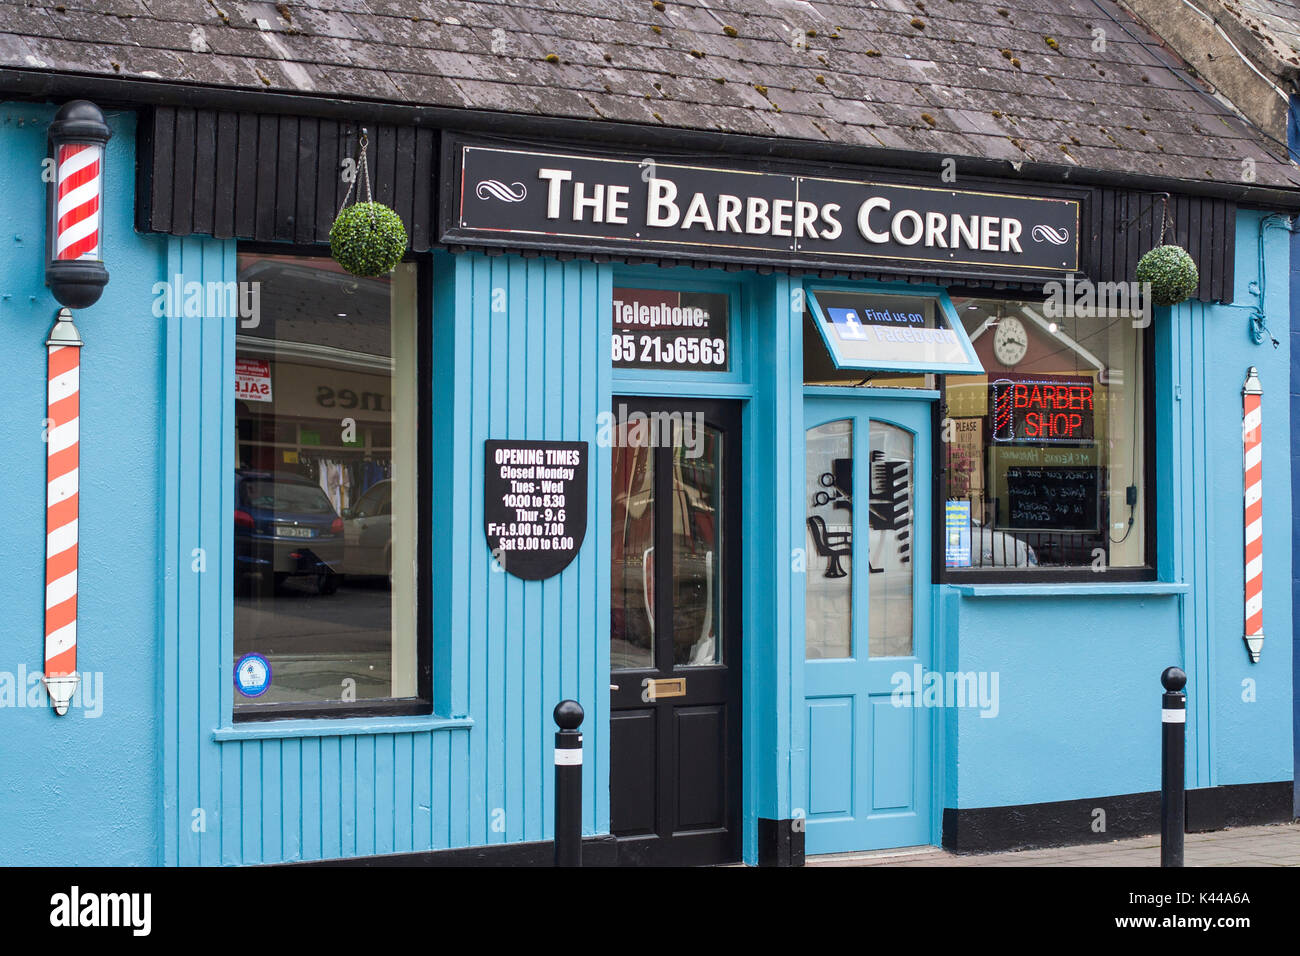 Barber Shop Front with Red and White Pole in Co.Clare Ireland - Stock Image